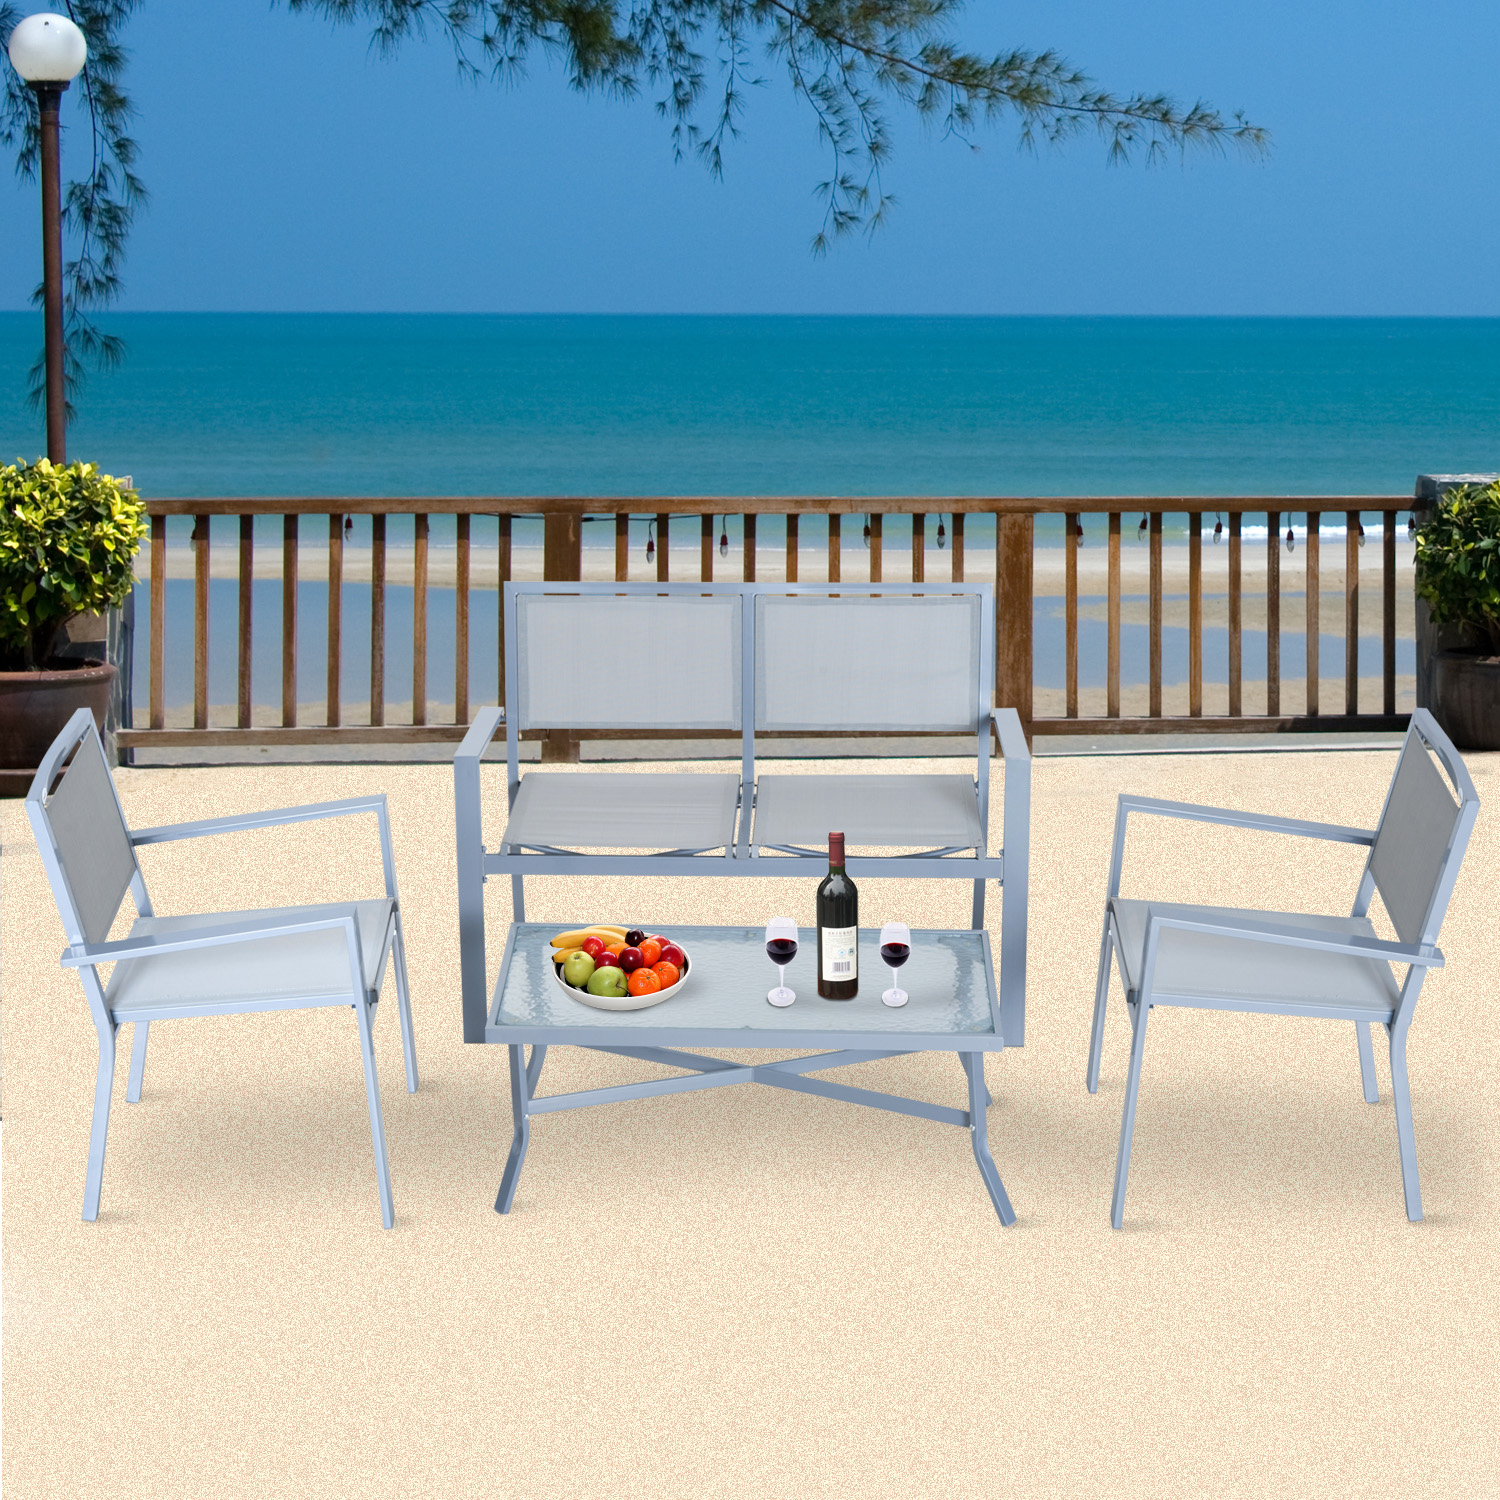 Image of CAD $249.99 Outsunny 4pc Sling Mesh Sectional Sofa Set Outdoor Garden Patio Furniture Grey / Table 4pcs Texteline Deck Canada 25093585791